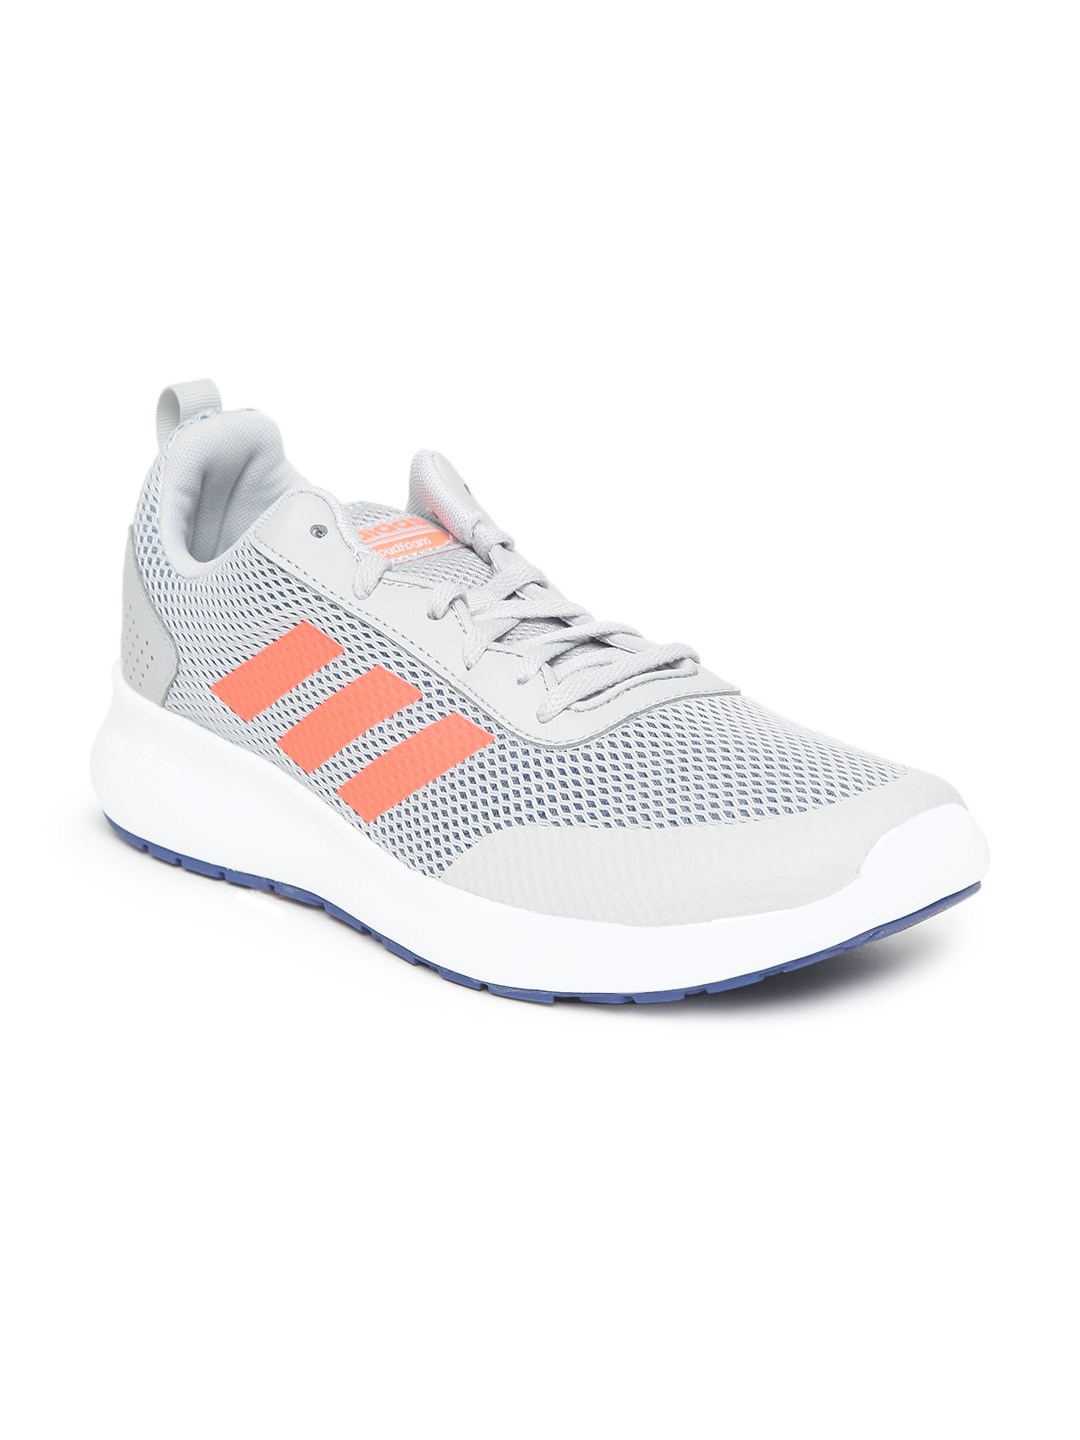 35ad029fdce8 Adidas Shoes Shoe - Buy Adidas Shoes Shoe online in India